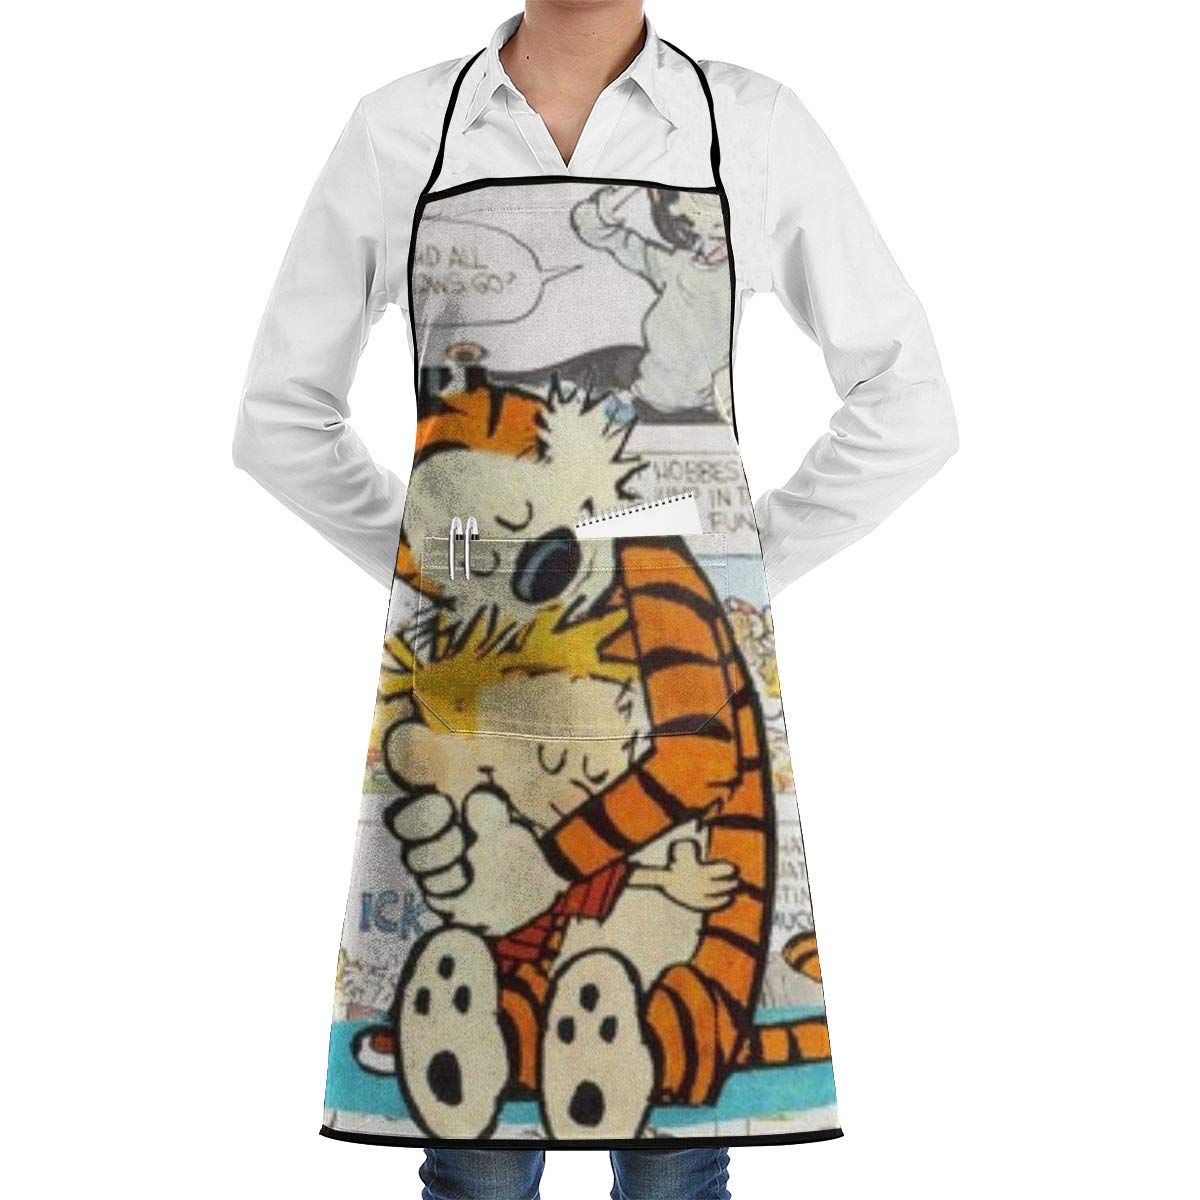 HHJSDHfvlfo Hope Tree Fashion Custom Calvin and Hobbes Unisex Chef Cooking Kitchen Aprons Bib with Pockets for Restaurant Baking Crafting Gardening BBQ Grill